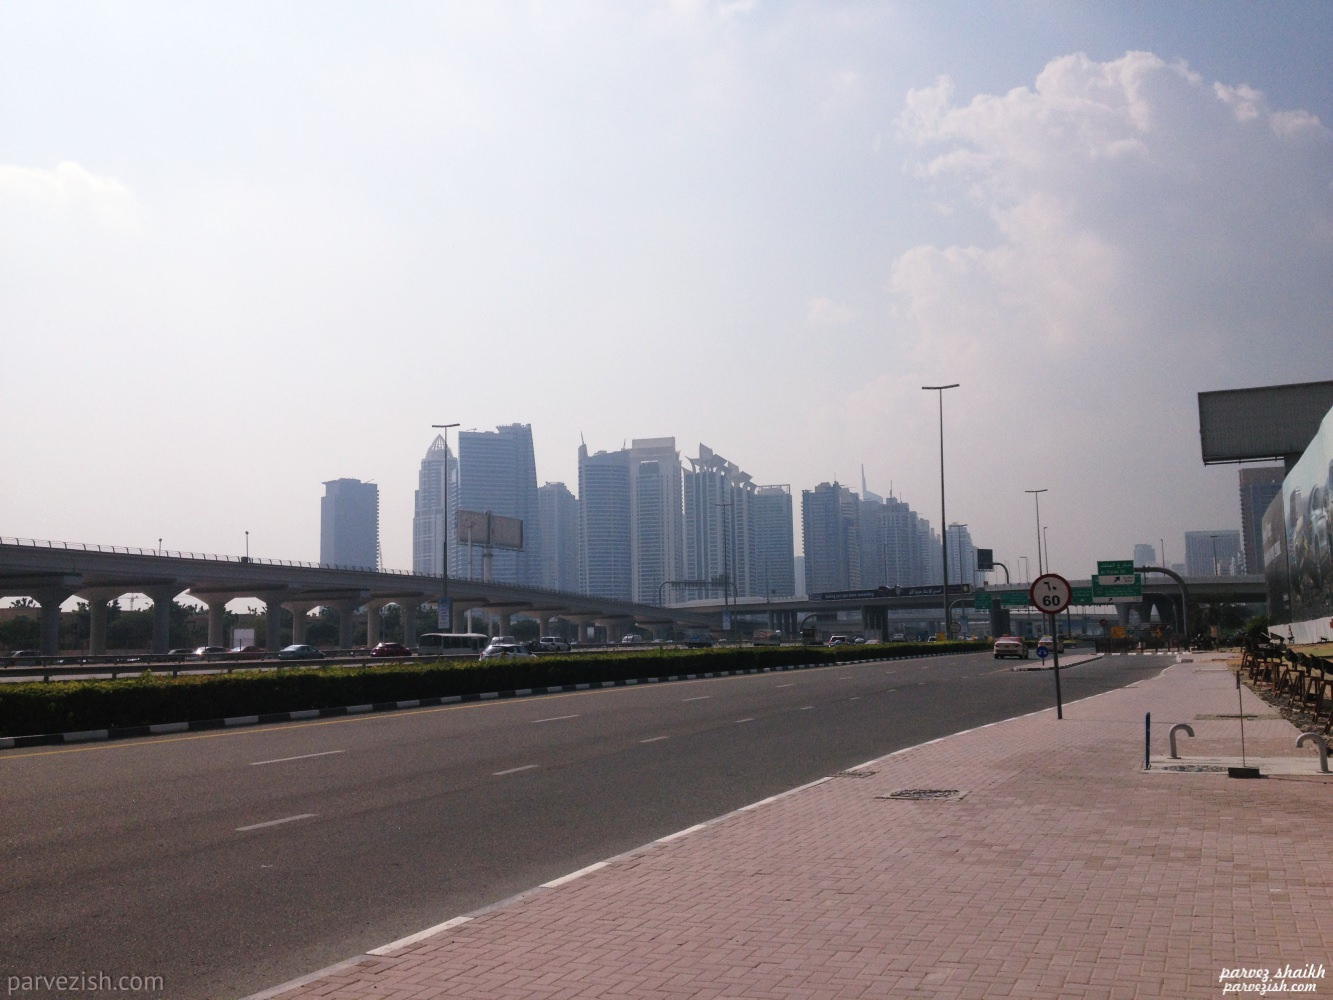 On Streets of Dubai - From Nakheel to Dubai Marina